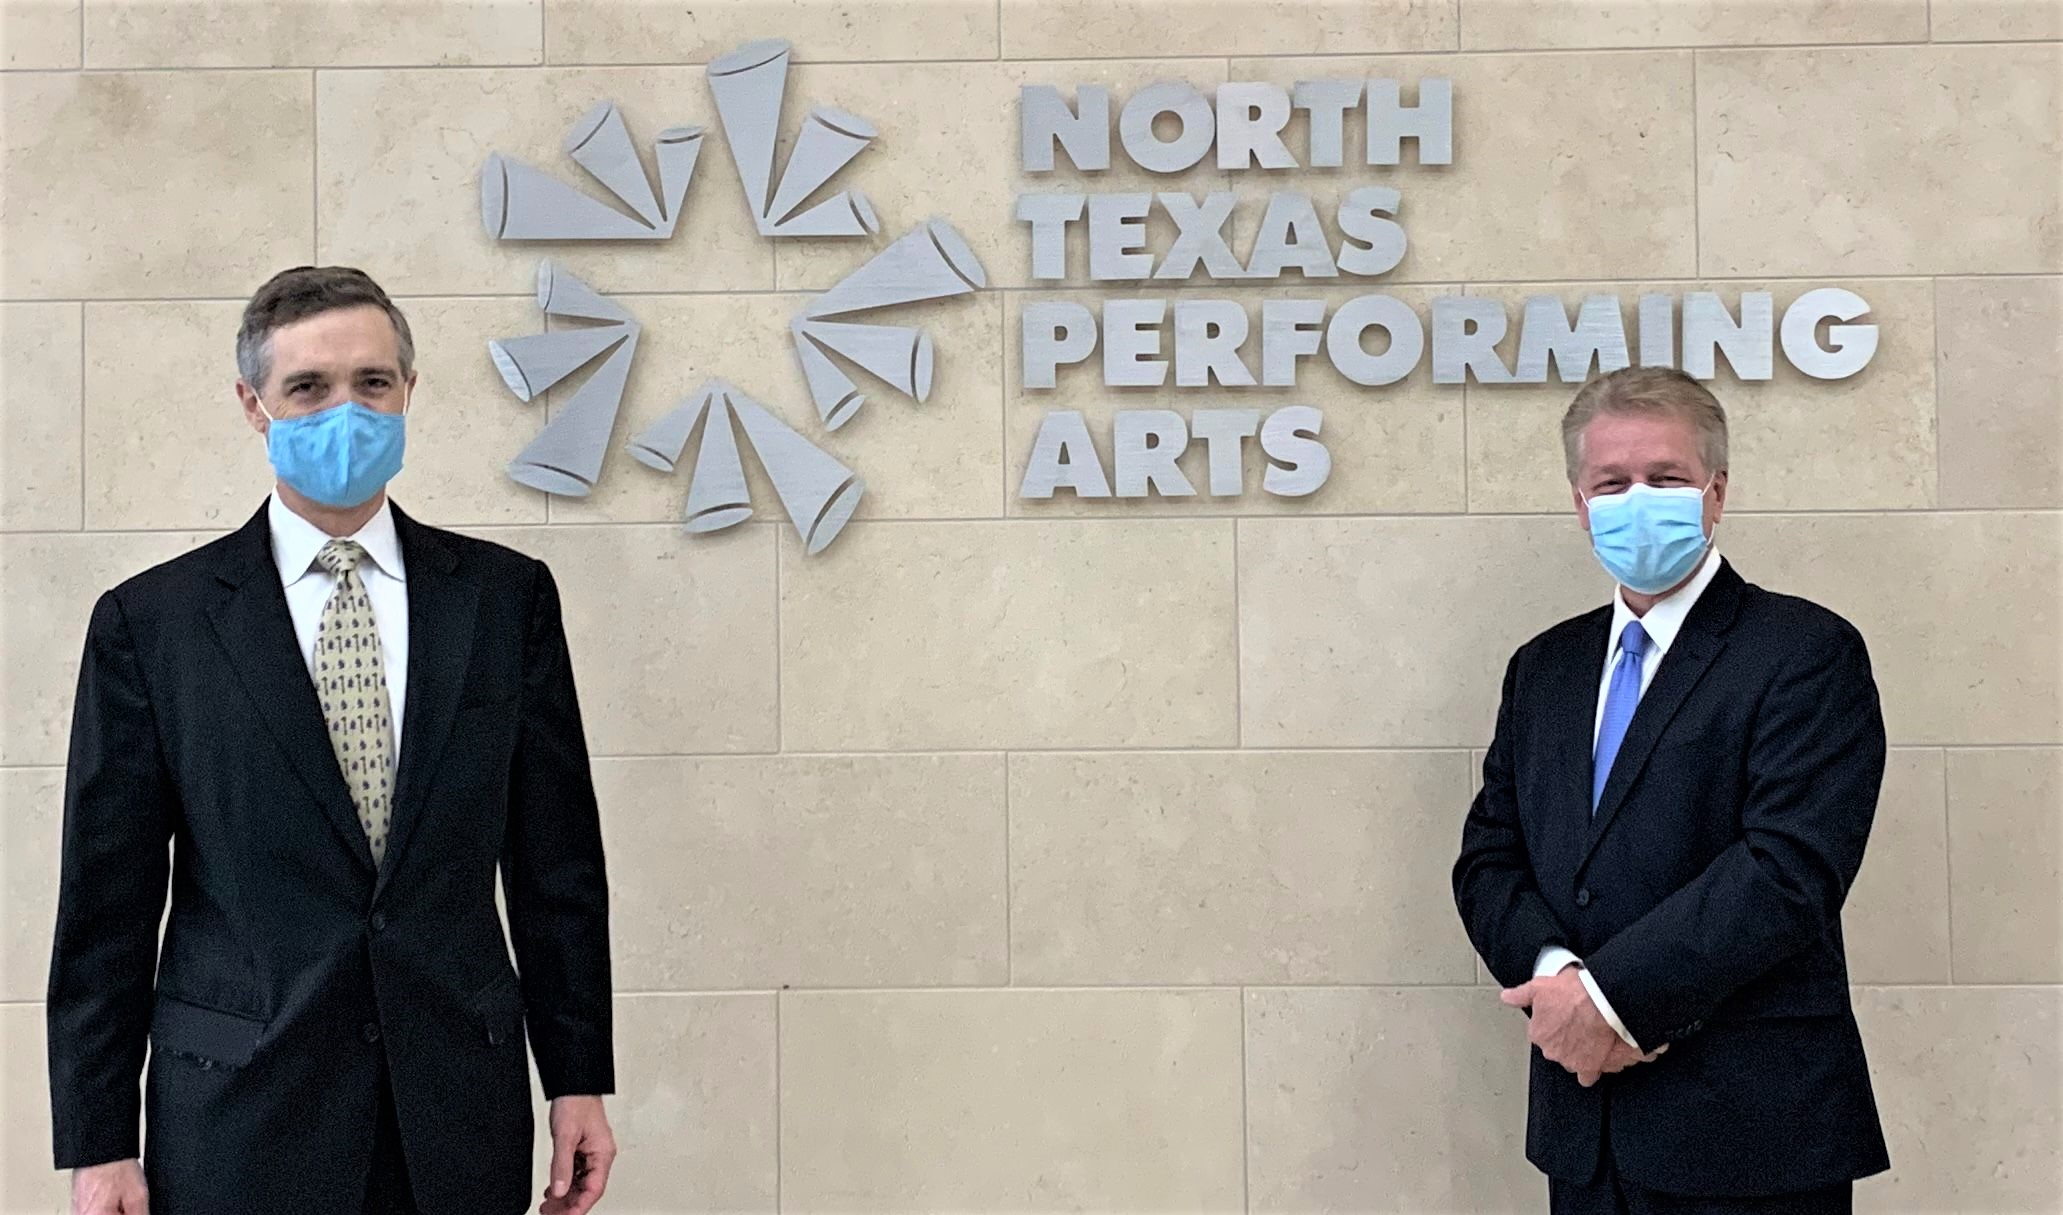 Van Taylor and Darrell Rodenbaugh photo-op in front of North Texas Performing Arts